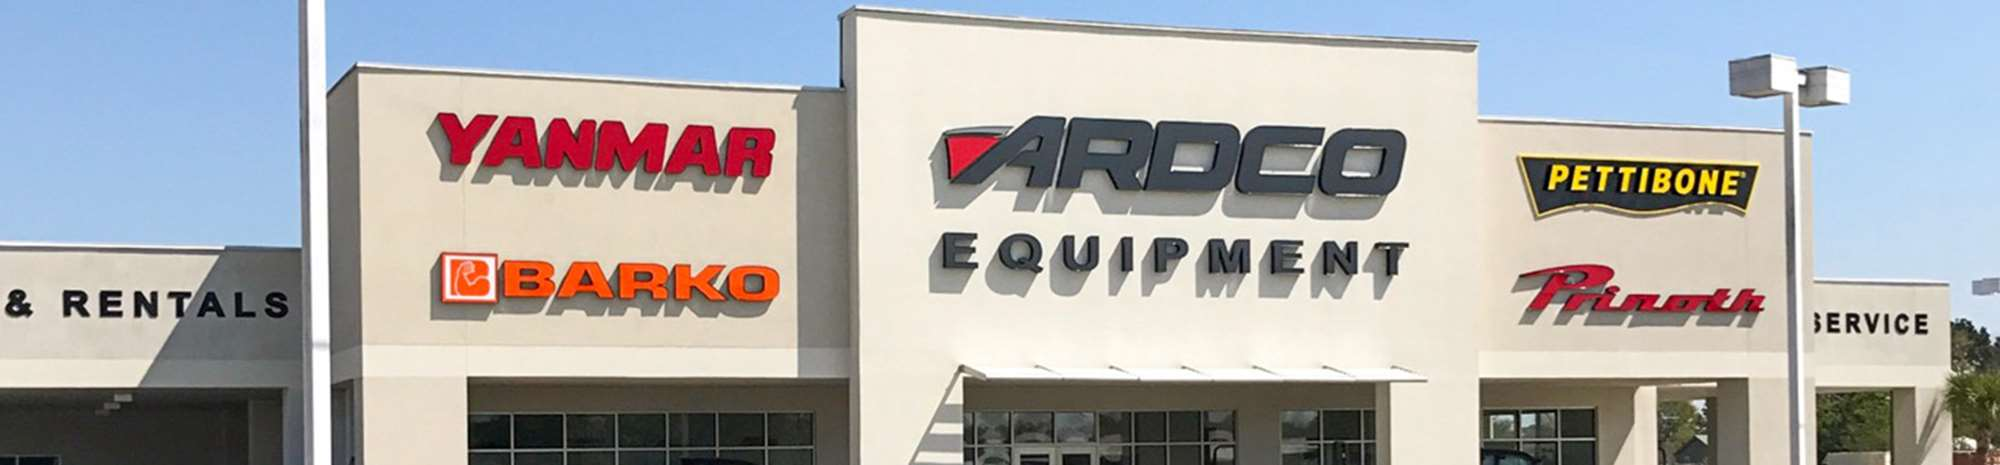 Ardco_Equipment_Banners_Contact-Us-2017.jpg